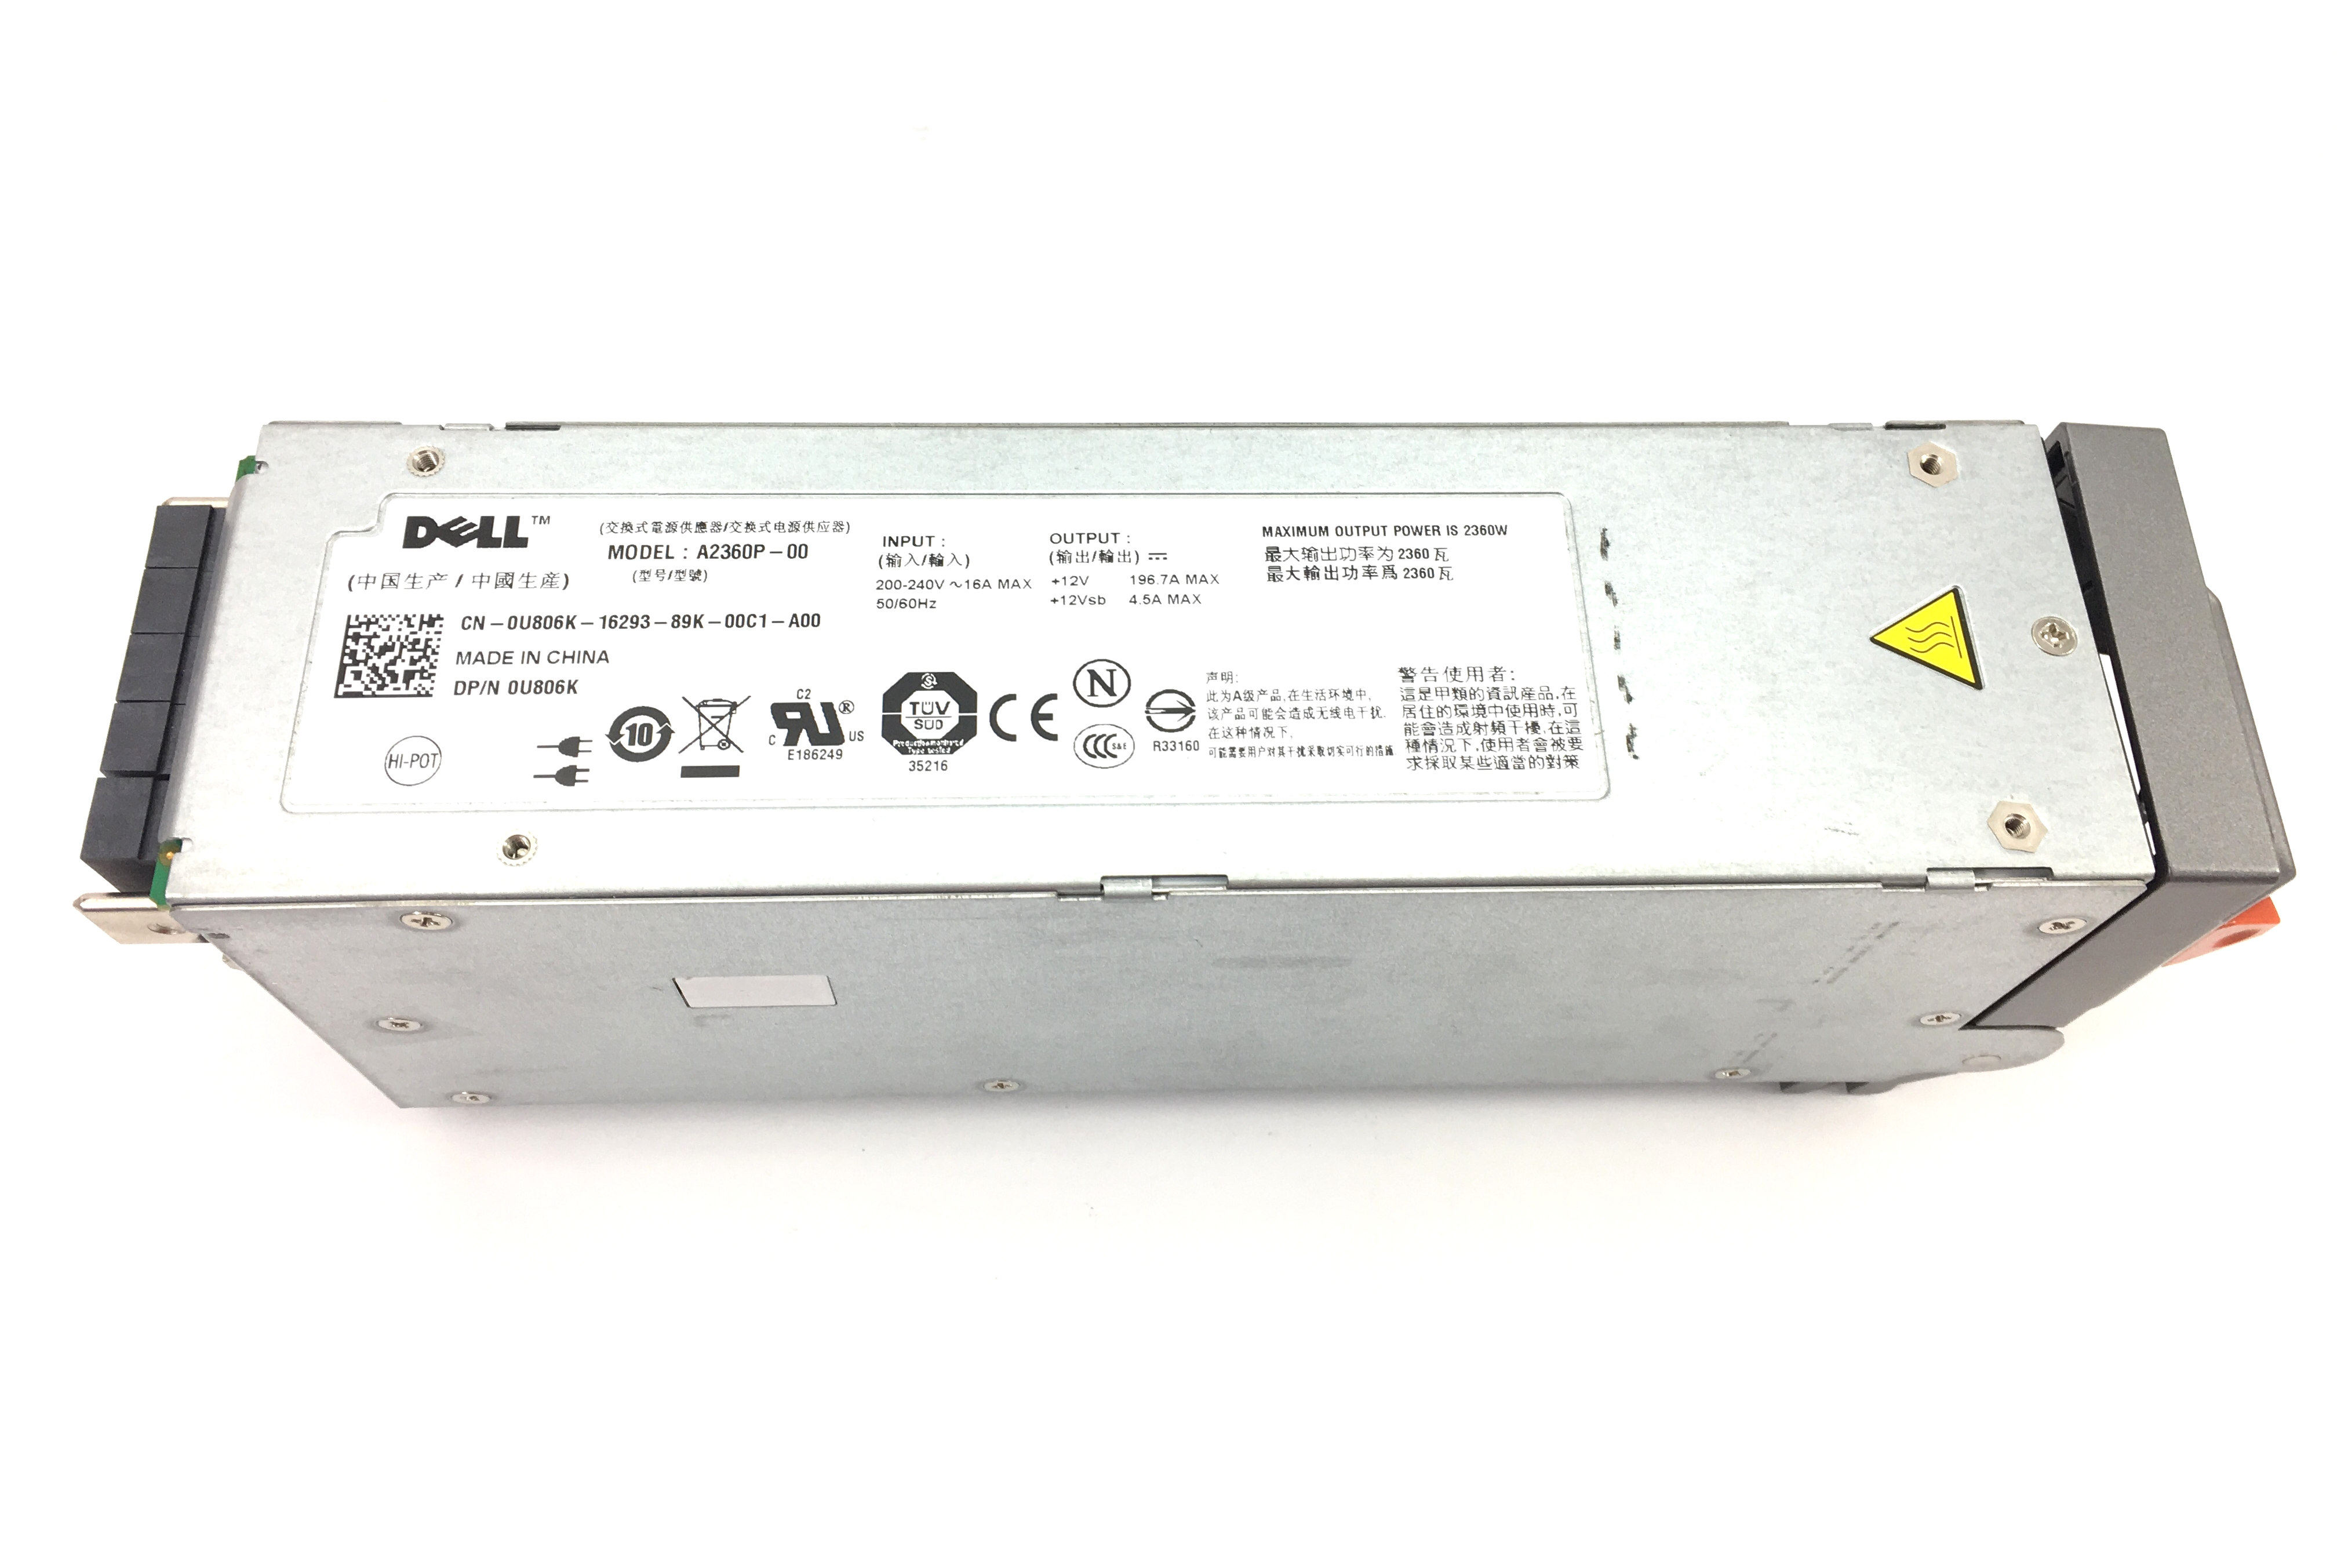 Dell A2360P-00 PowerEdge M1000E 2360W Power Supply (U806K)